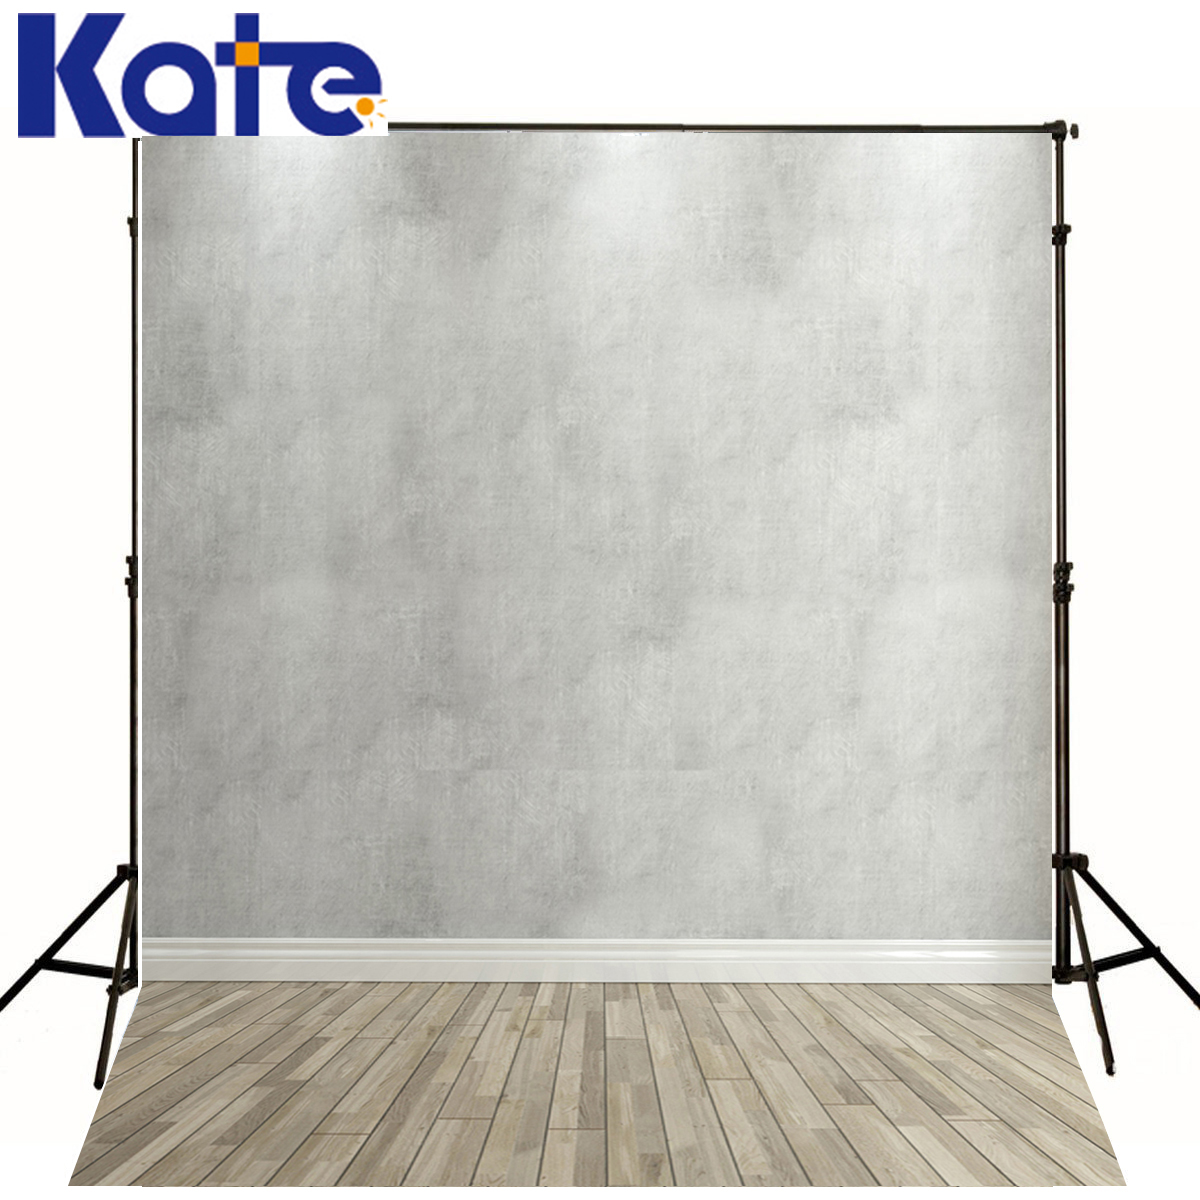 Kate Wood Background Photography Solid White Wall Backdrop Photo Wood Floor Photocall Backgrounds For Photo Studio J01676 150x220cm thin vinly photography backdrop wallpaper wooden floor drop custom photo prop backdrop backgrounds l736